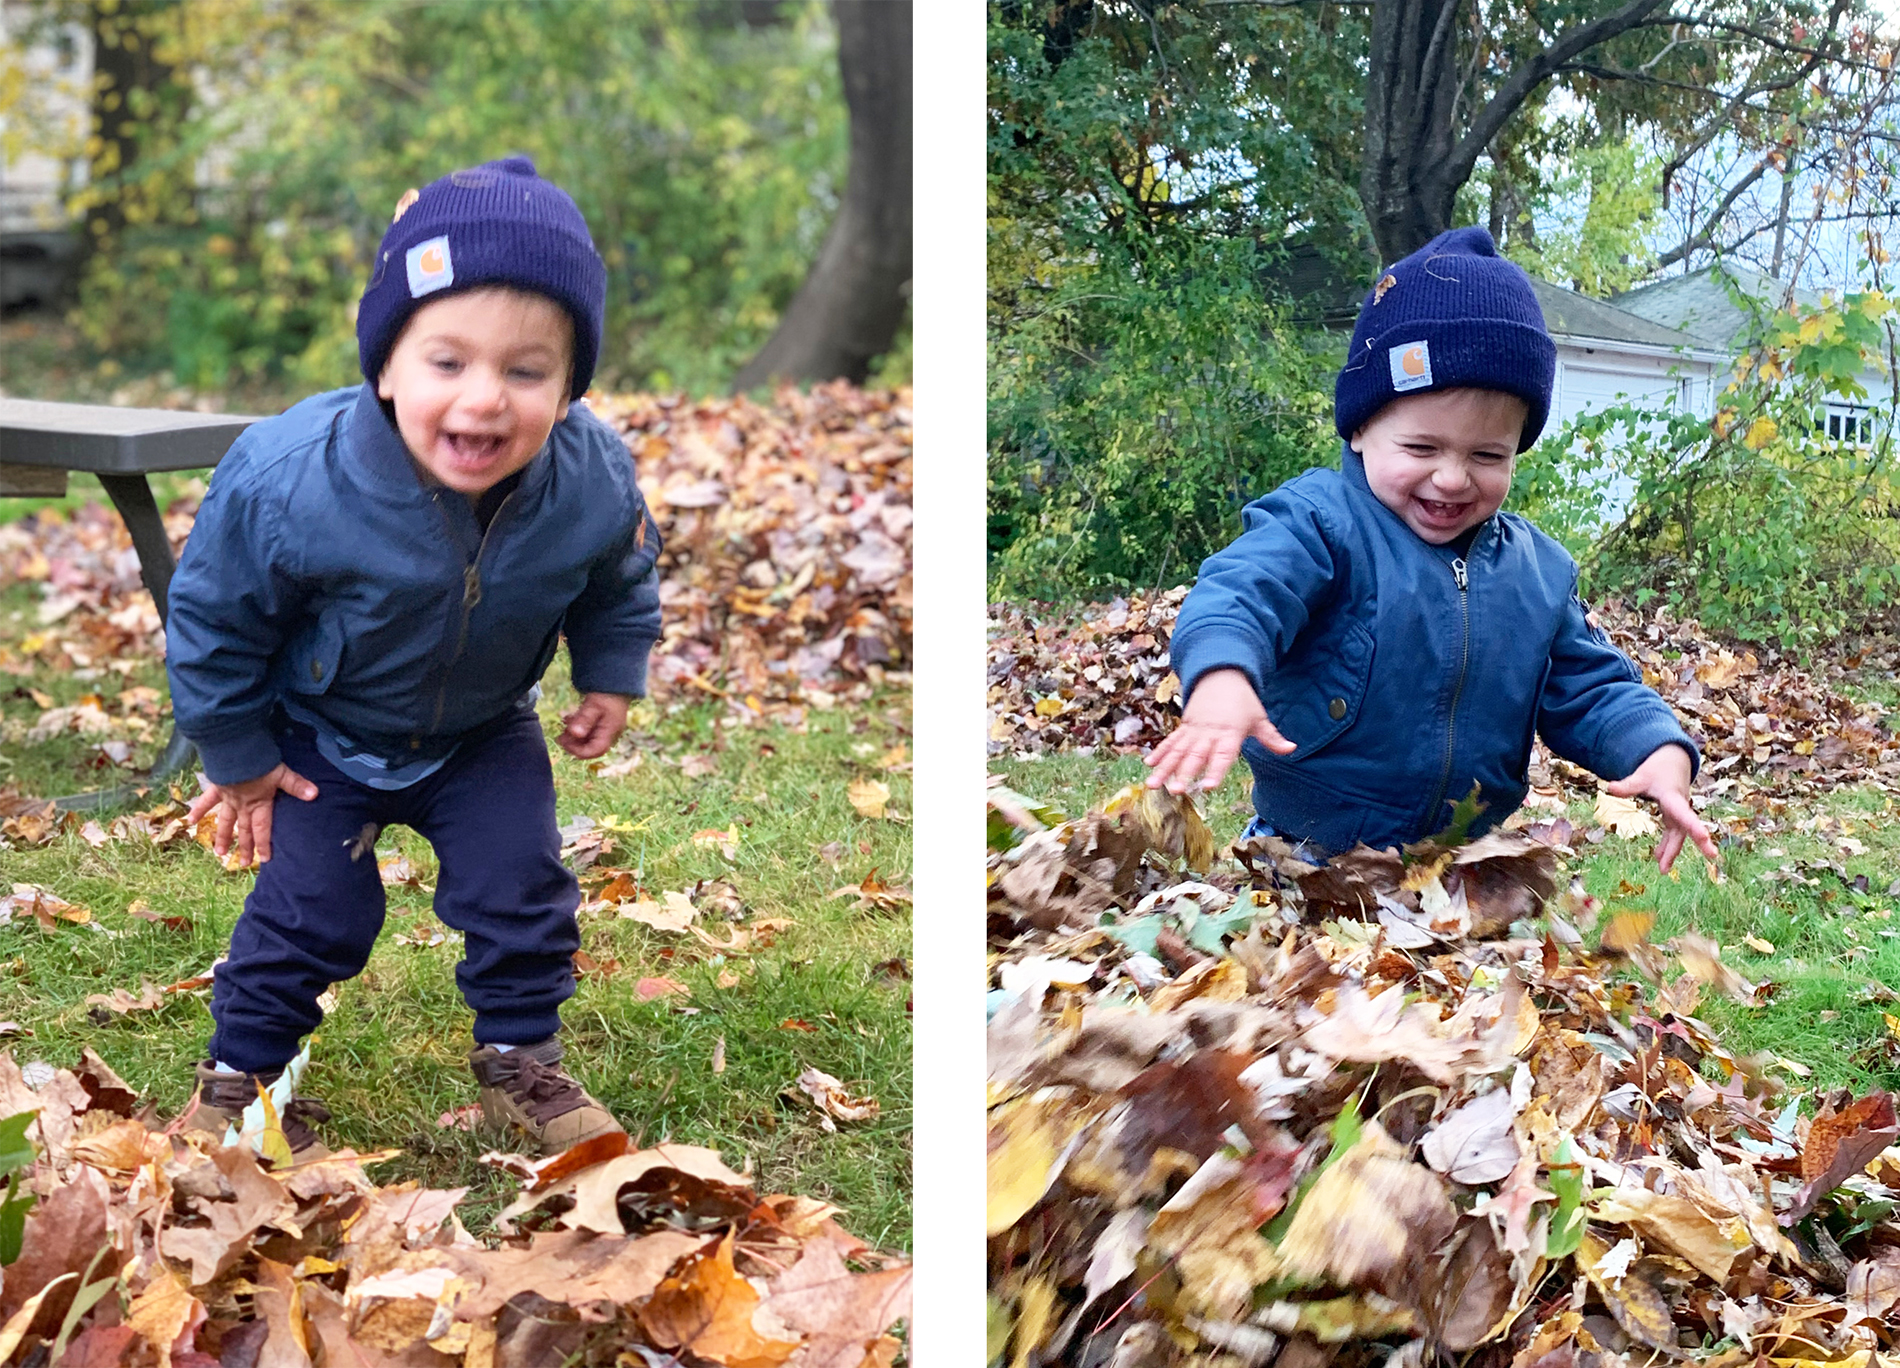 comparison of photos taken in portrait versus normal iphone photo mode, by jamie bannon photography.